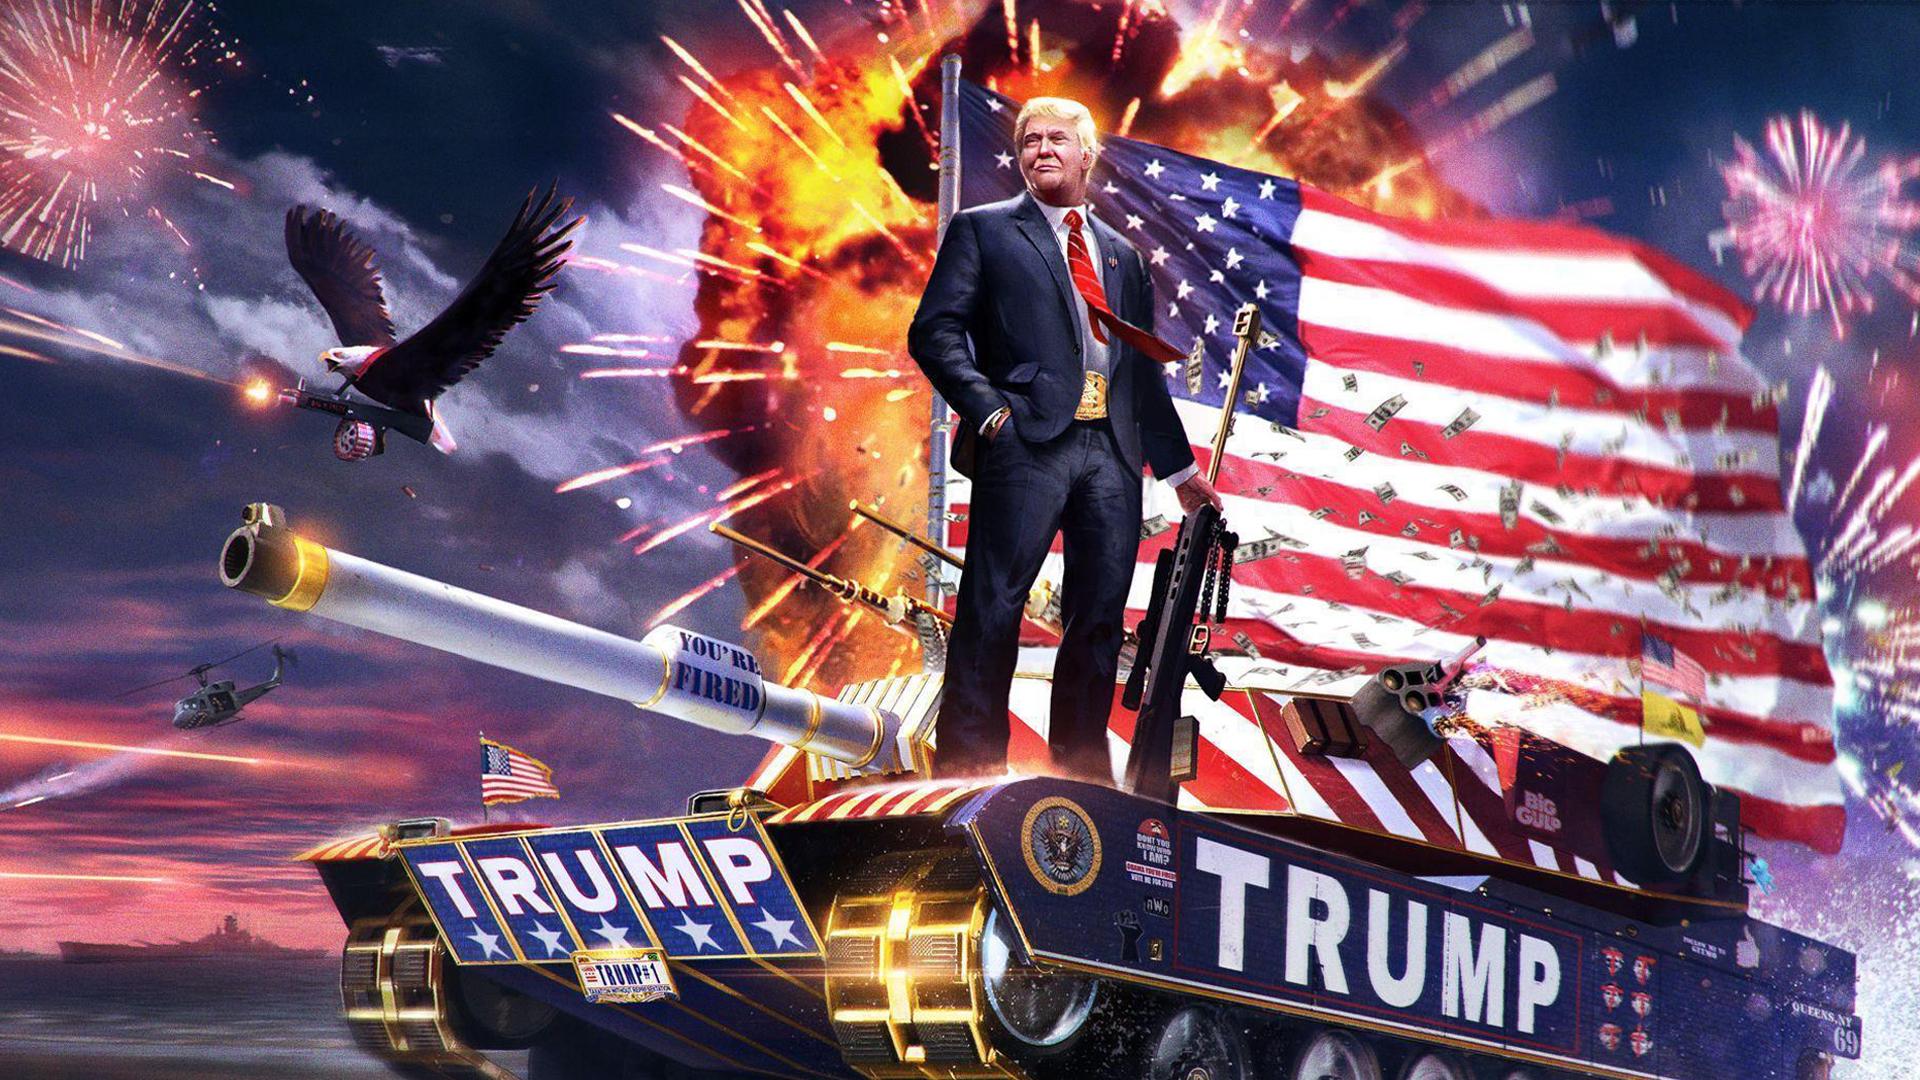 Donald Trump Make America Great Again Wallpaper Hd Man 4k Wallpapers Images Photos And Background